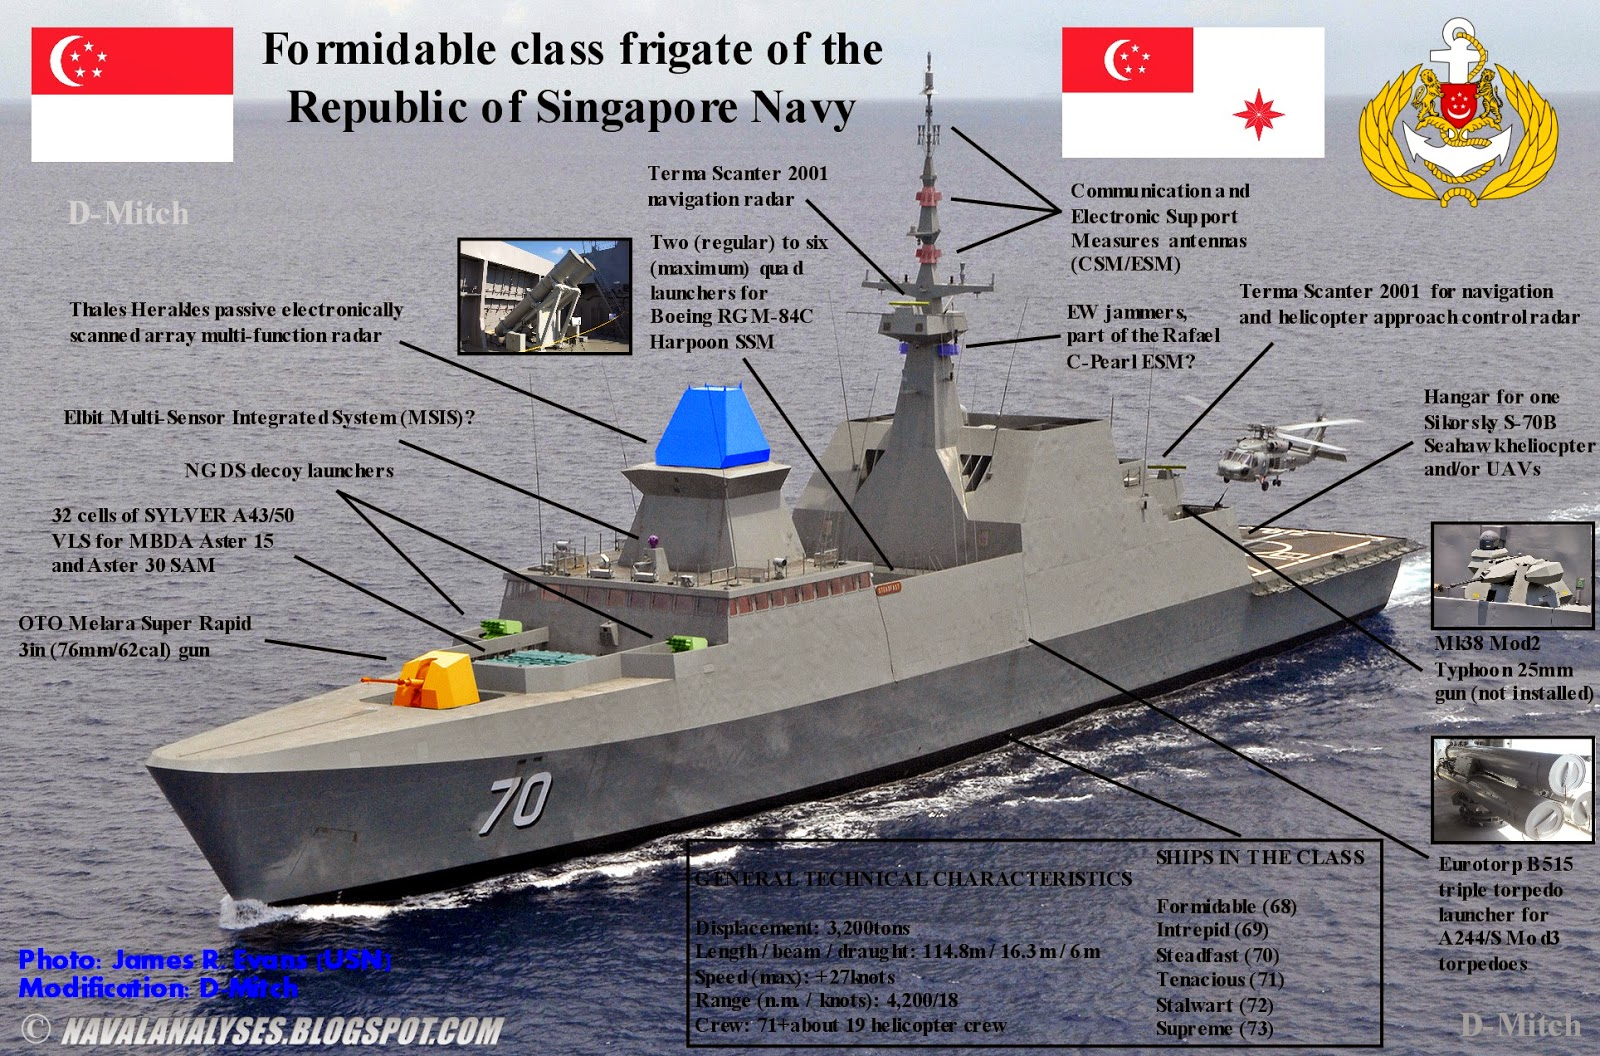 click to enlarge modified photo of a formidable class frigate prior the improvements high resolution image here source navalanalysesblogspotcom